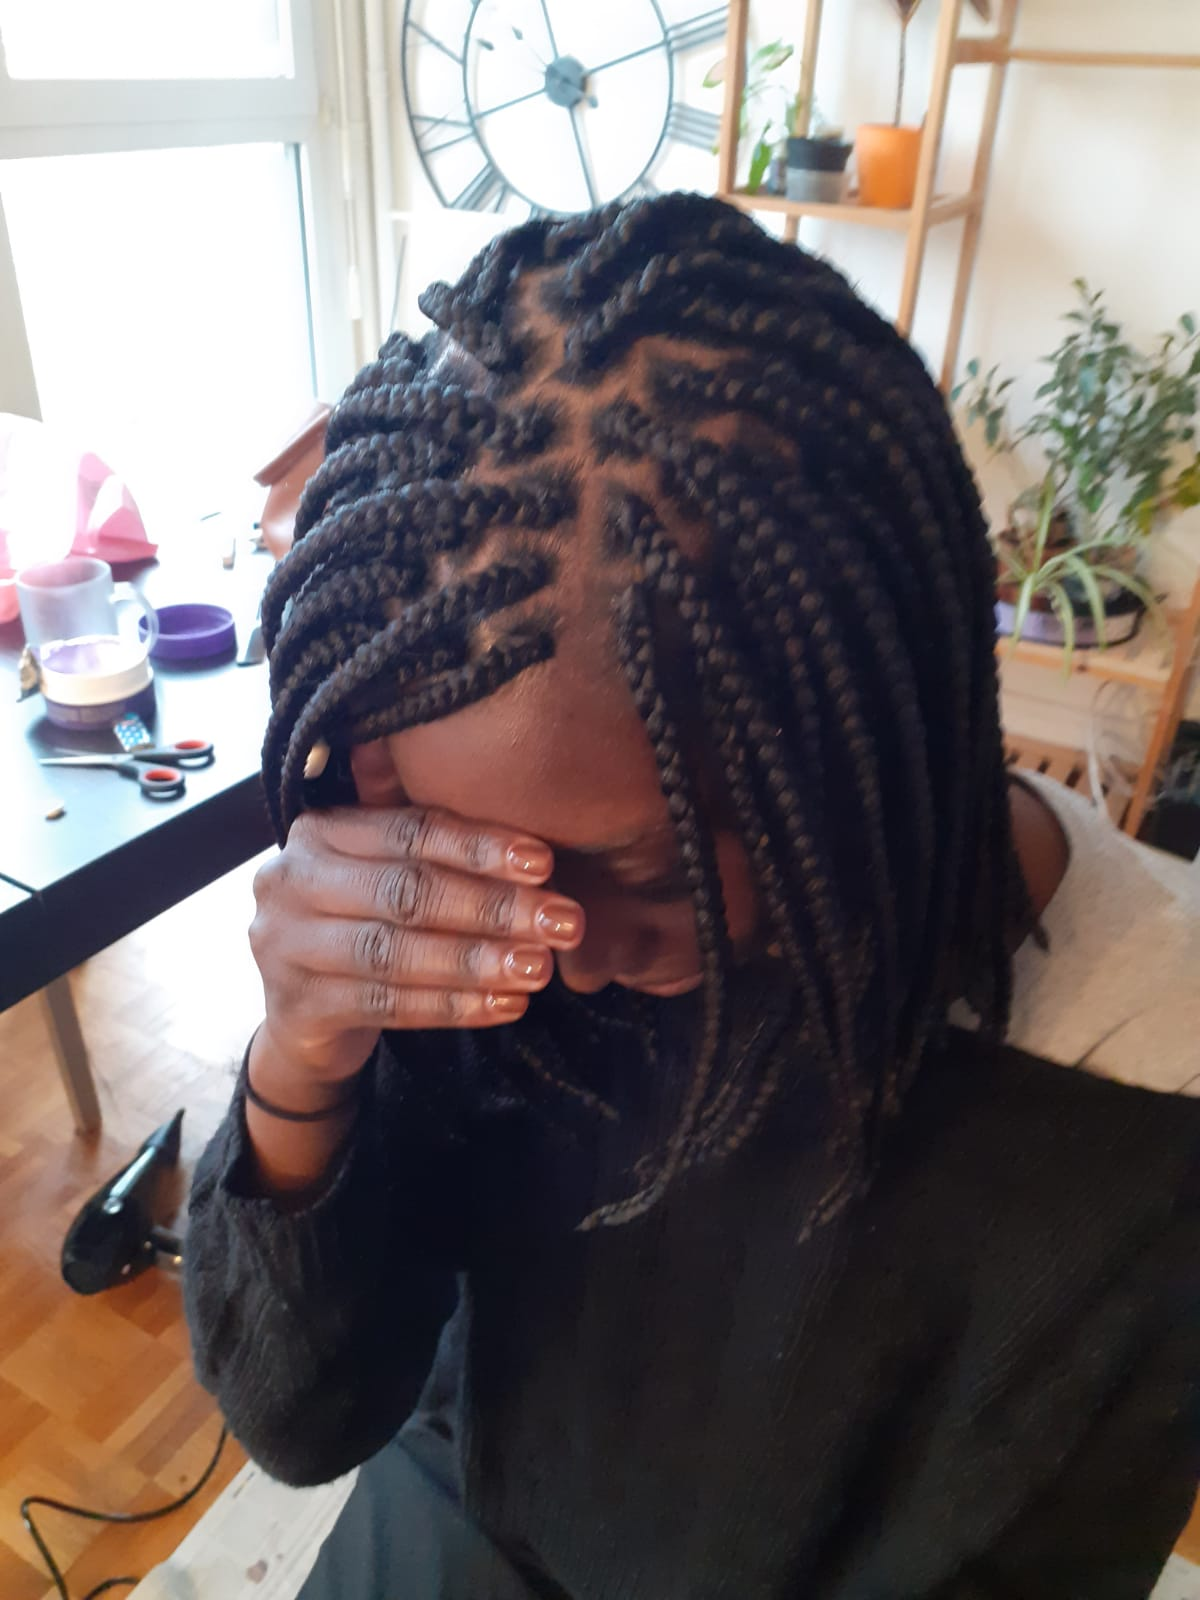 salon de coiffure afro tresse tresses box braids crochet braids vanilles tissages paris 75 77 78 91 92 93 94 95 UOCYPQRK